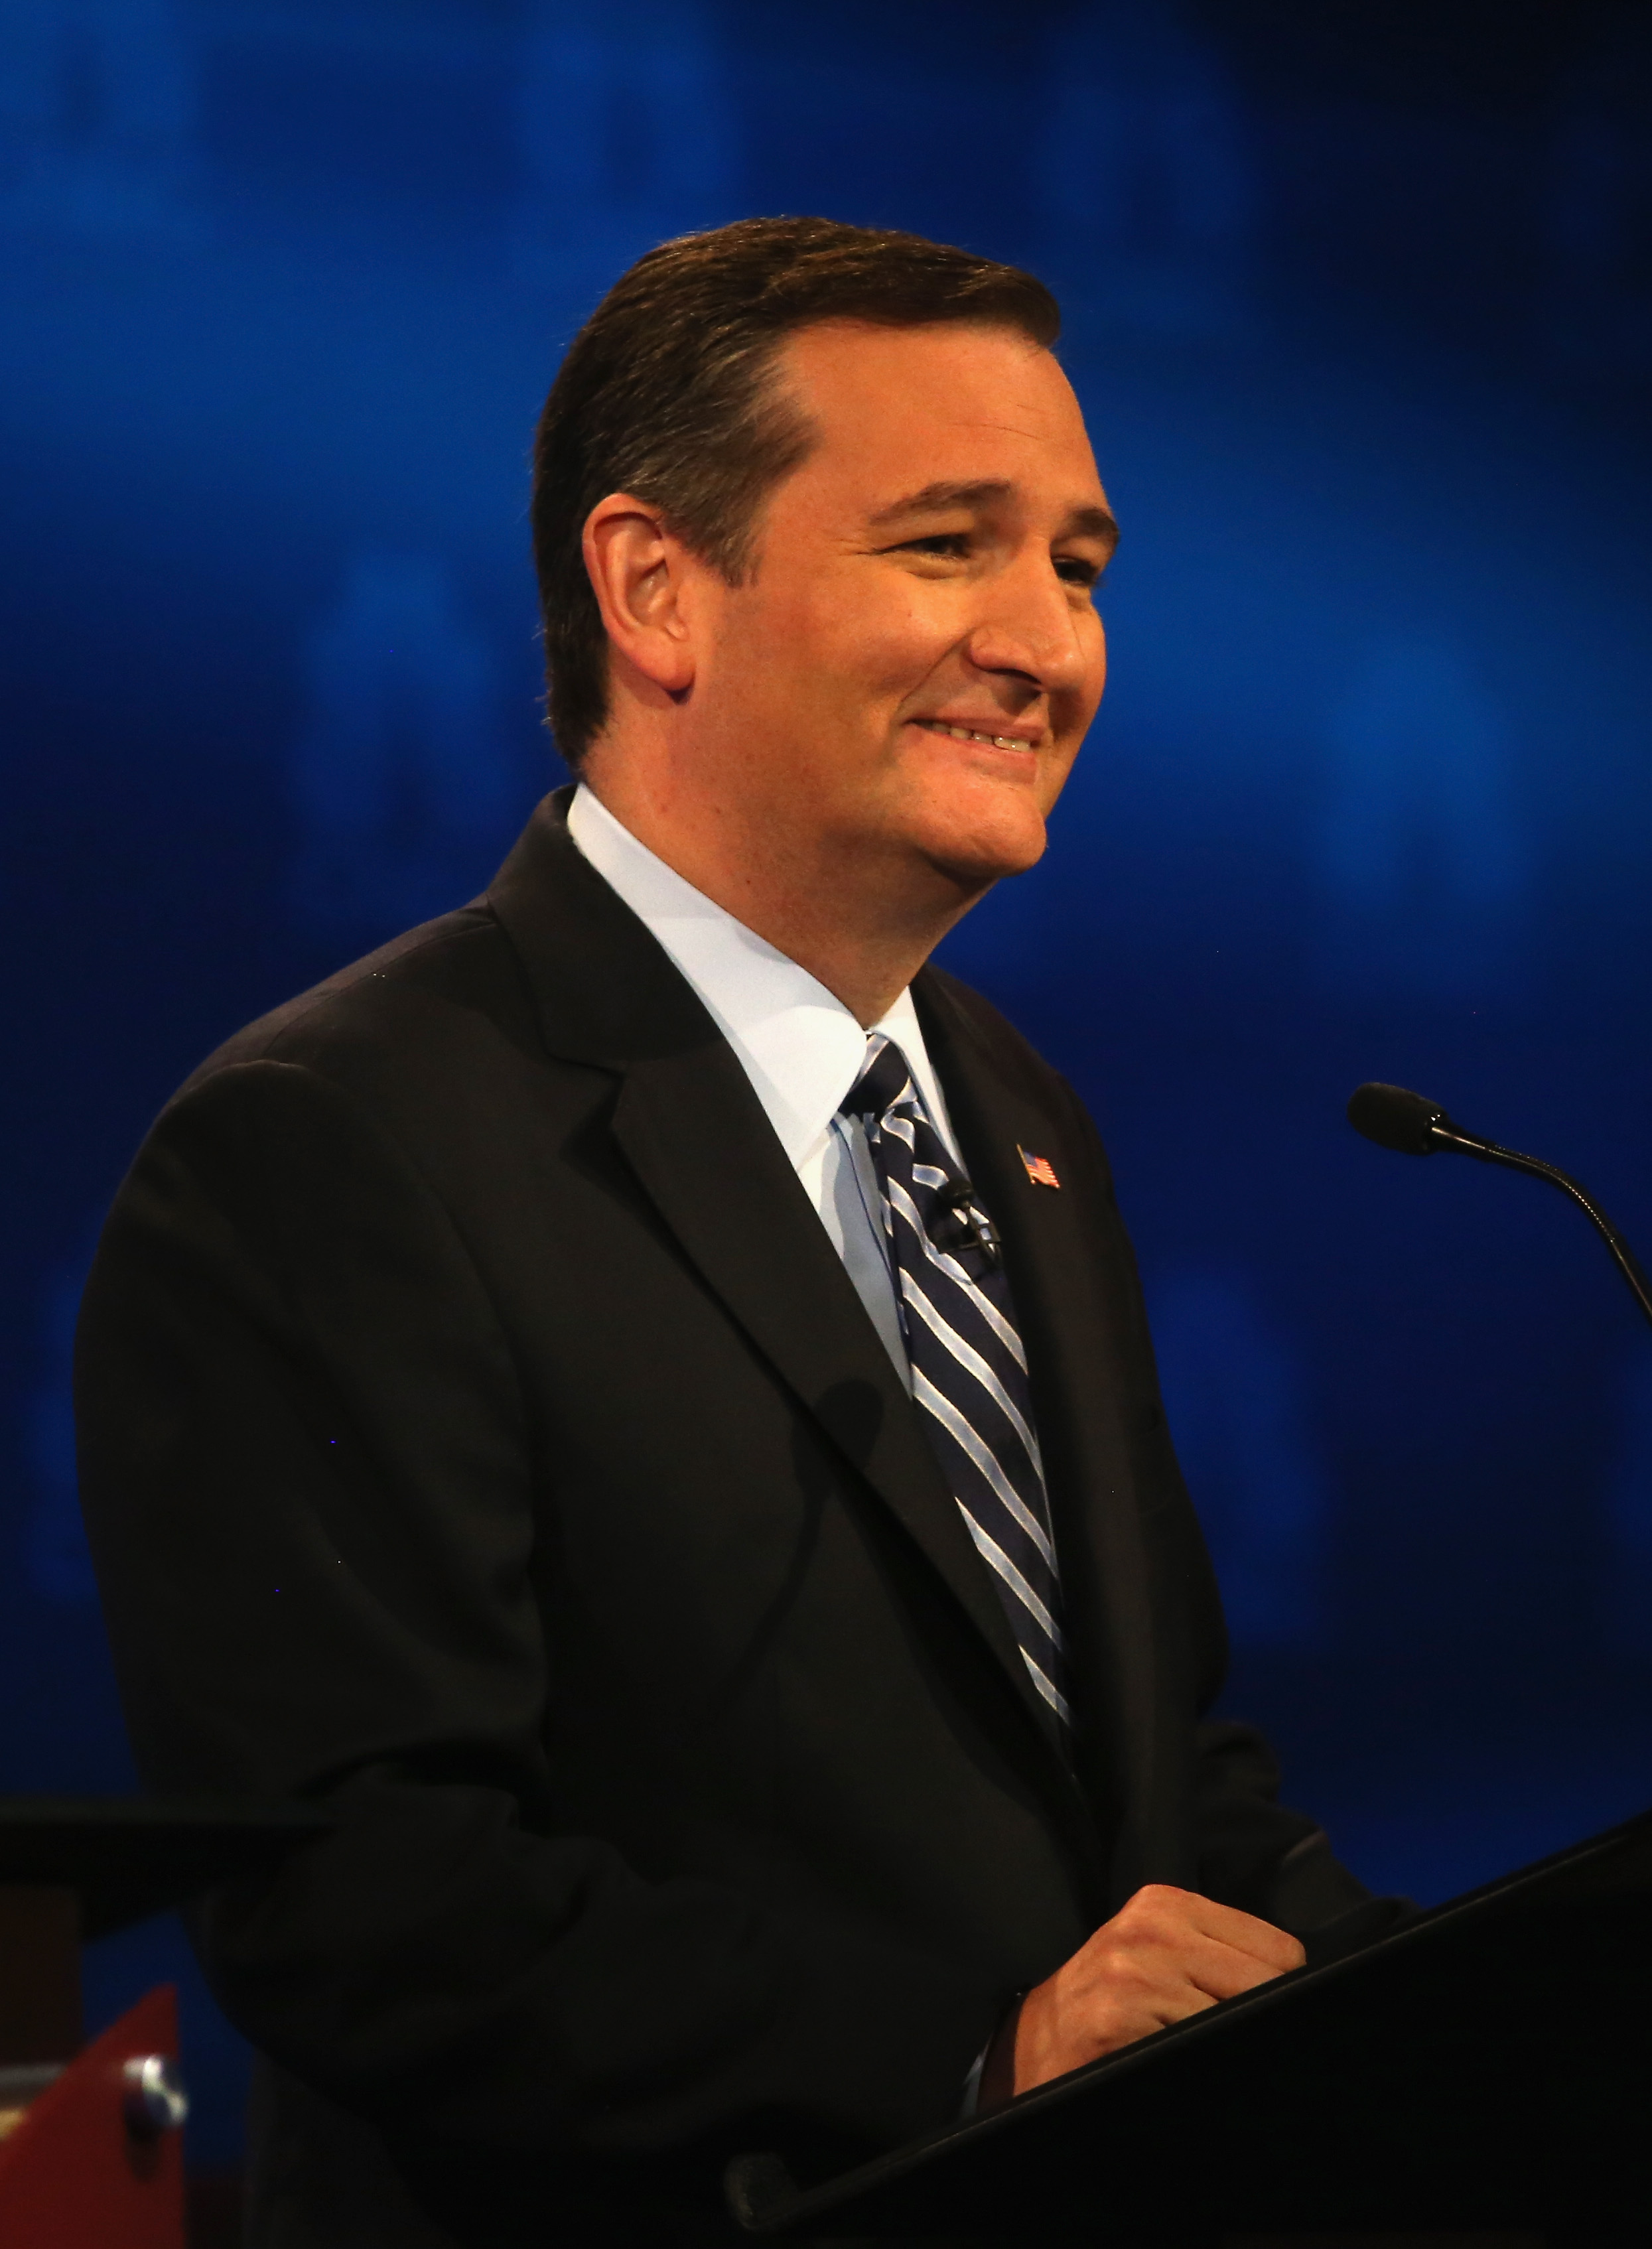 Presidential candidate Sen. Ted Cruz (R-TX) smiles during the CNBC Republican Presidential Debate at University of Colorados Coors Events Center Oct. 28, 2015, in Boulder. (Photo by Justin Sullivan/Getty Images)